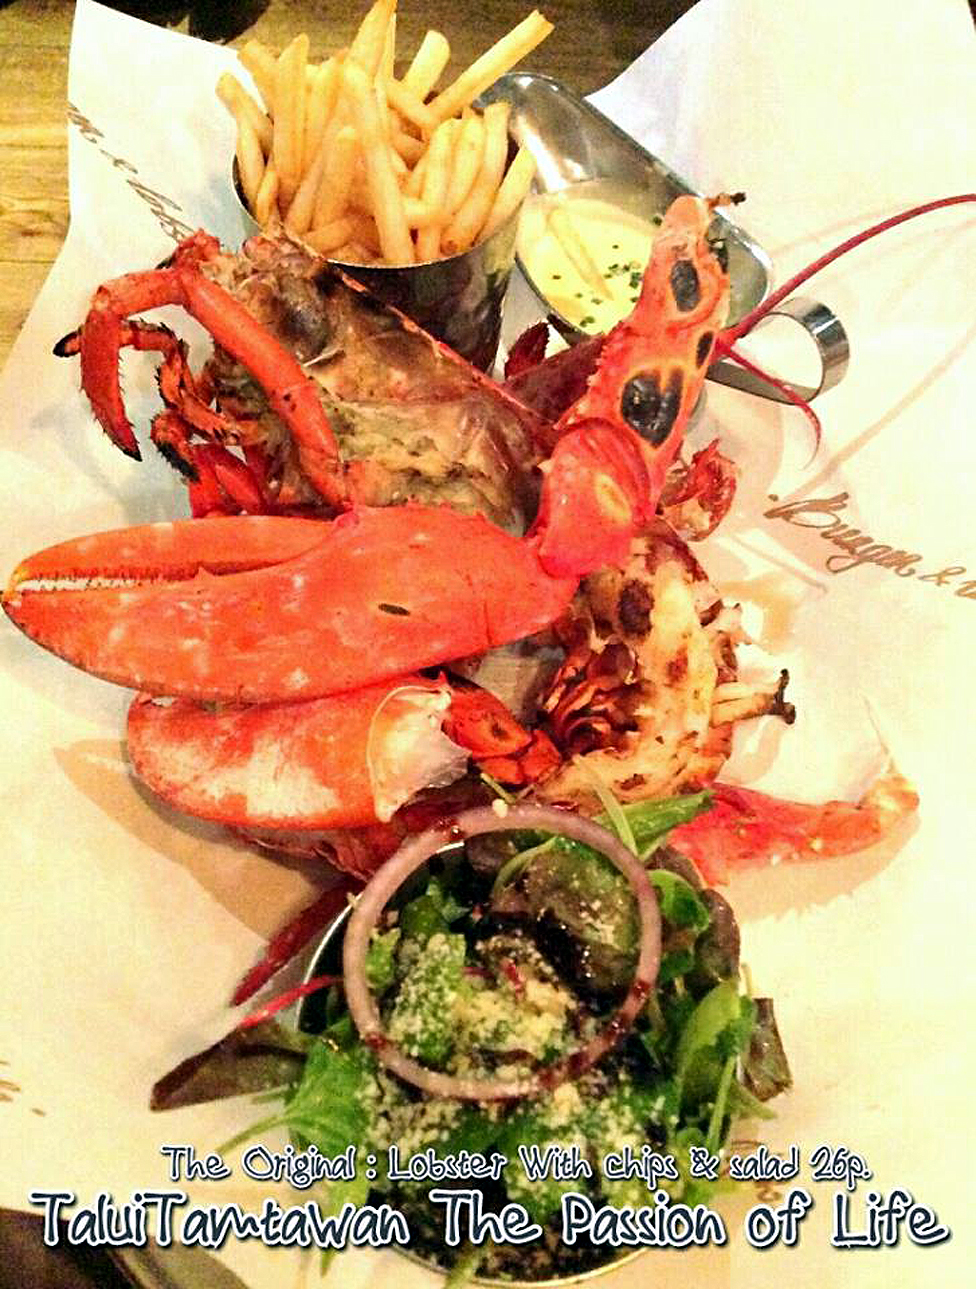 THE ORIGINAL LOBSTER With chips & salad , avg. 700 grams £26